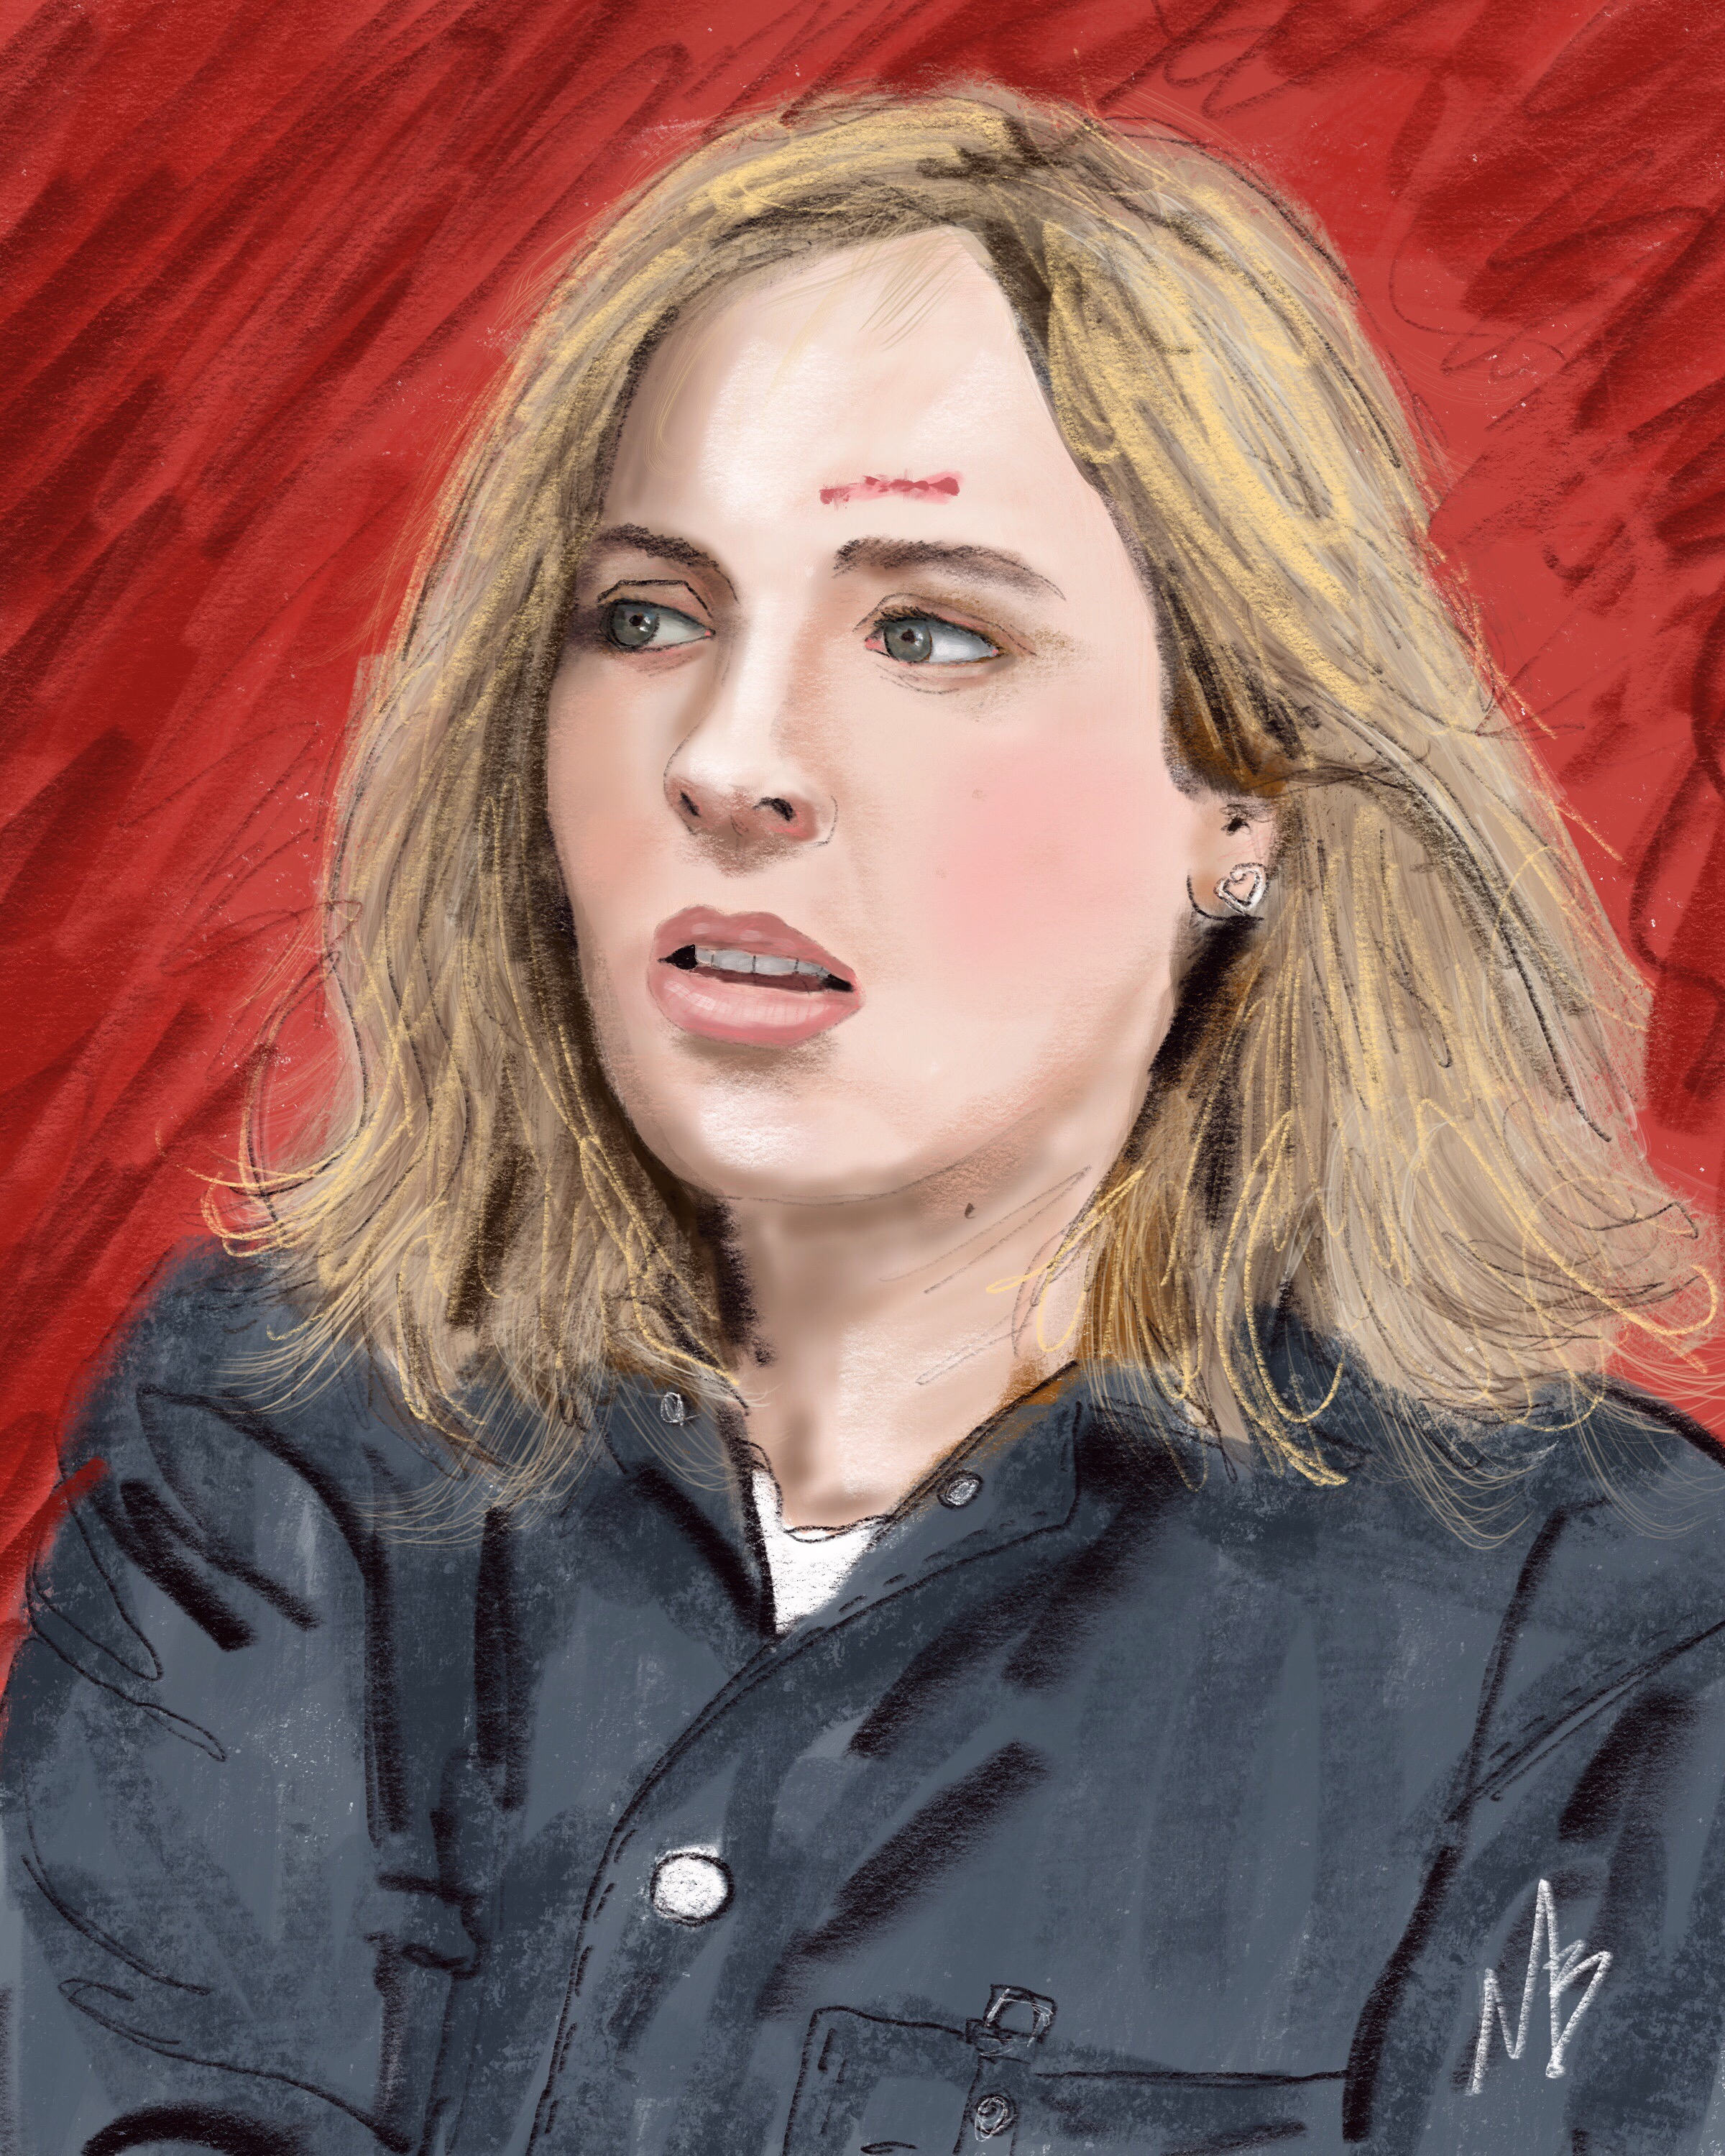 Just finished watching @trvlrsseries on @netflix - best part was @mackenziepmusic performance. Really liked the show. 👍🏻😎 #digitalart #fanart #travelerstvshow #netflix #digitalpainting #mackenzieporter #scifi #art #artist #portrait #actress #tv